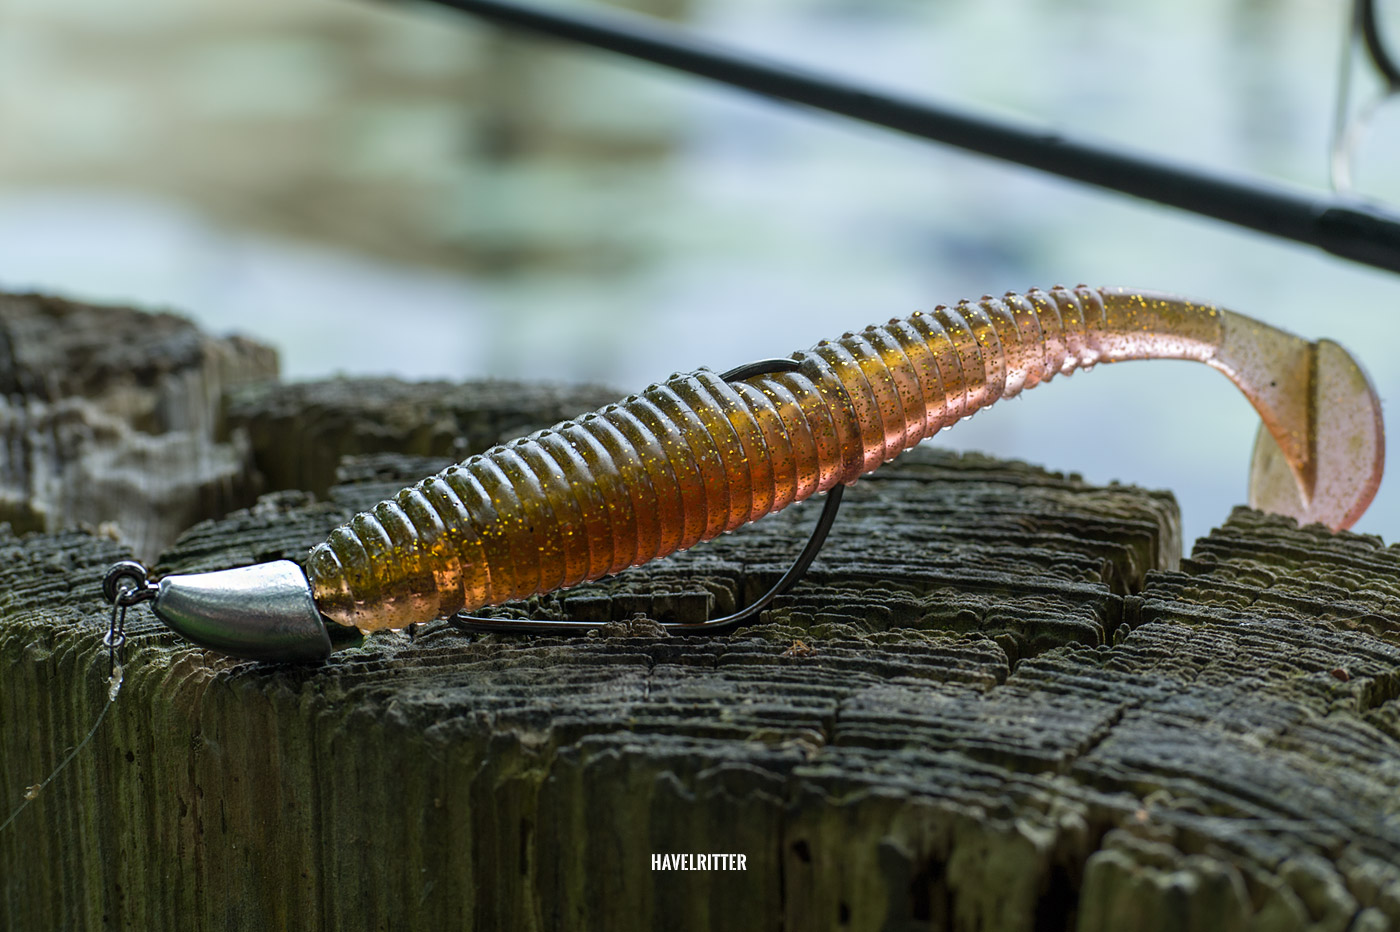 Fish Arrow AirBag Shad 4.5 am Decoy VJ-36 Decibo Violence Offset-Jig